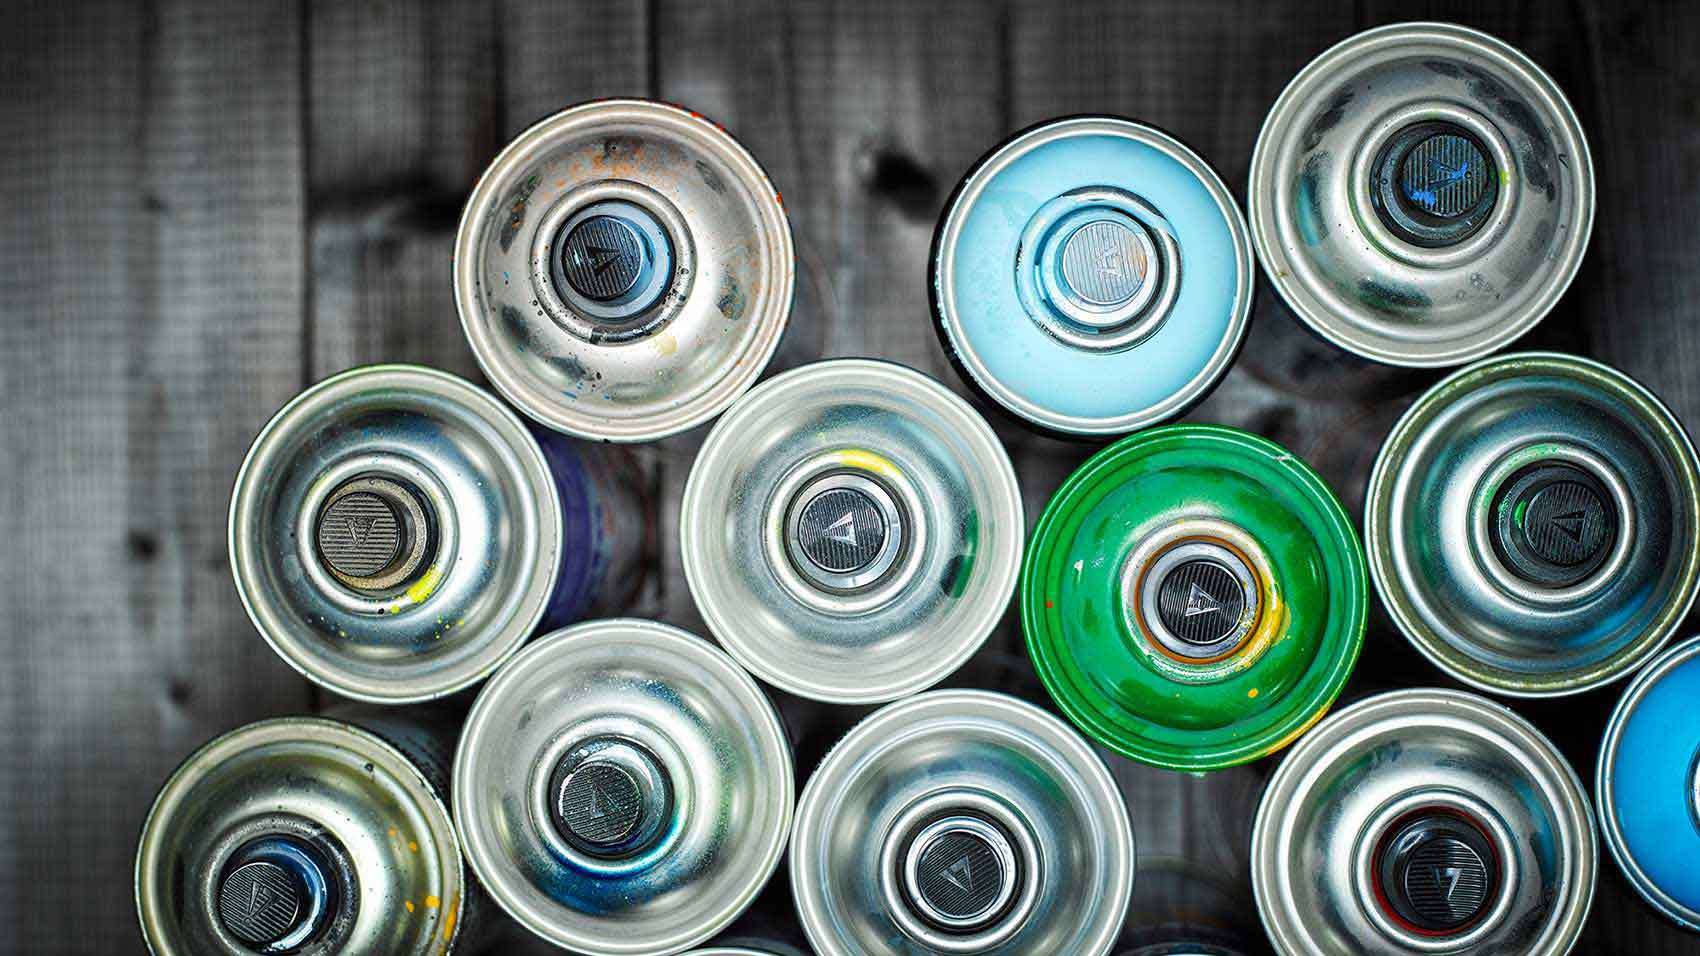 SC Johnson's product recycling program helped waste workers sort recycling and separate aerosol cans from other materials.